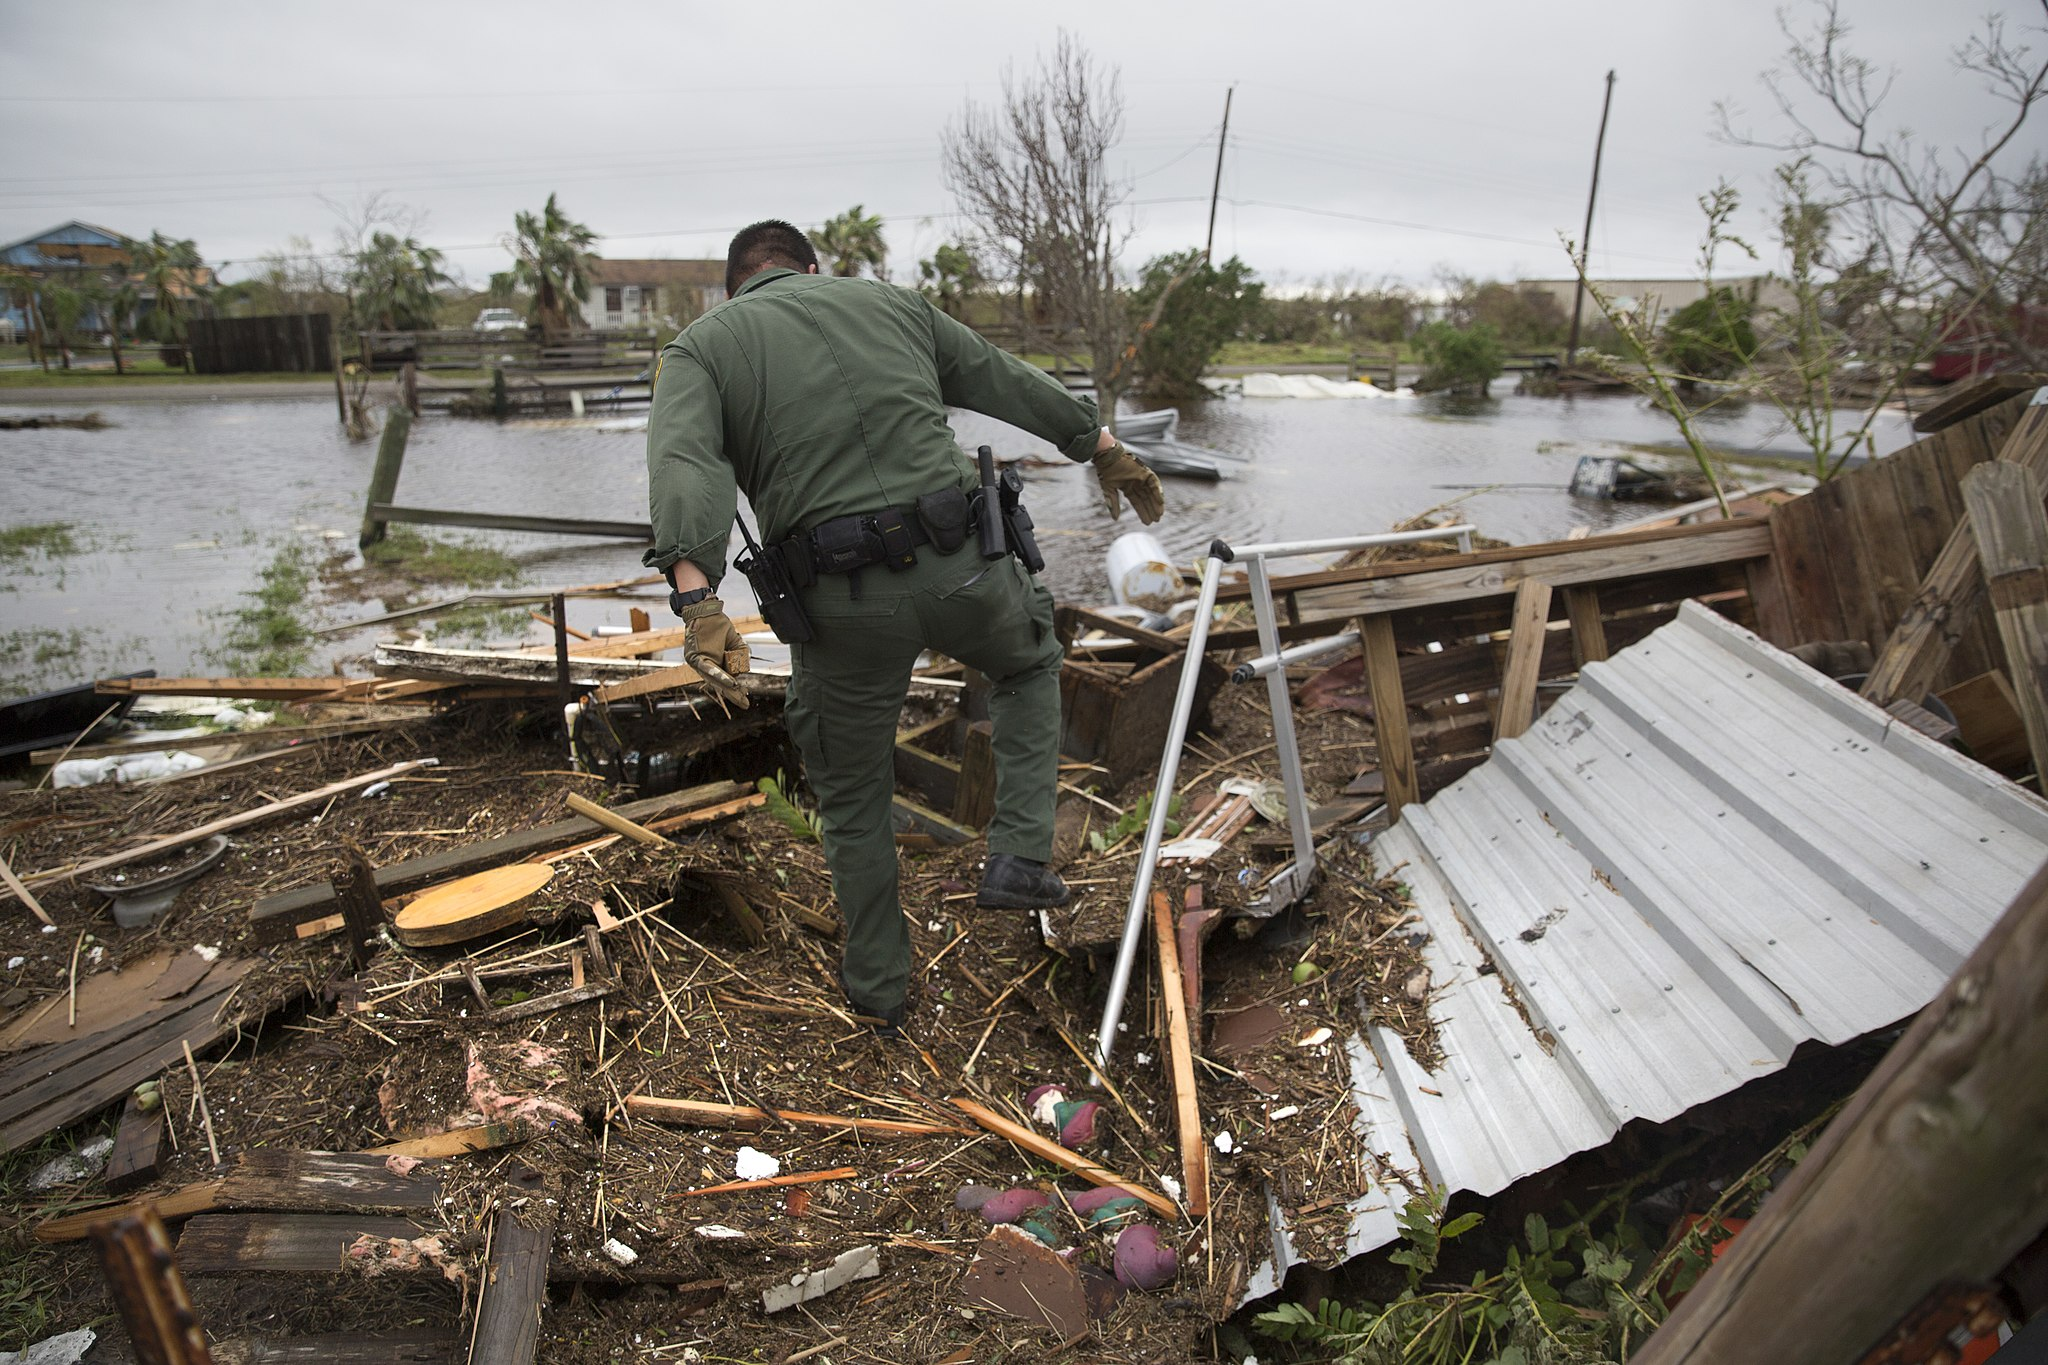 Search for survivors after Hurricane Harvey